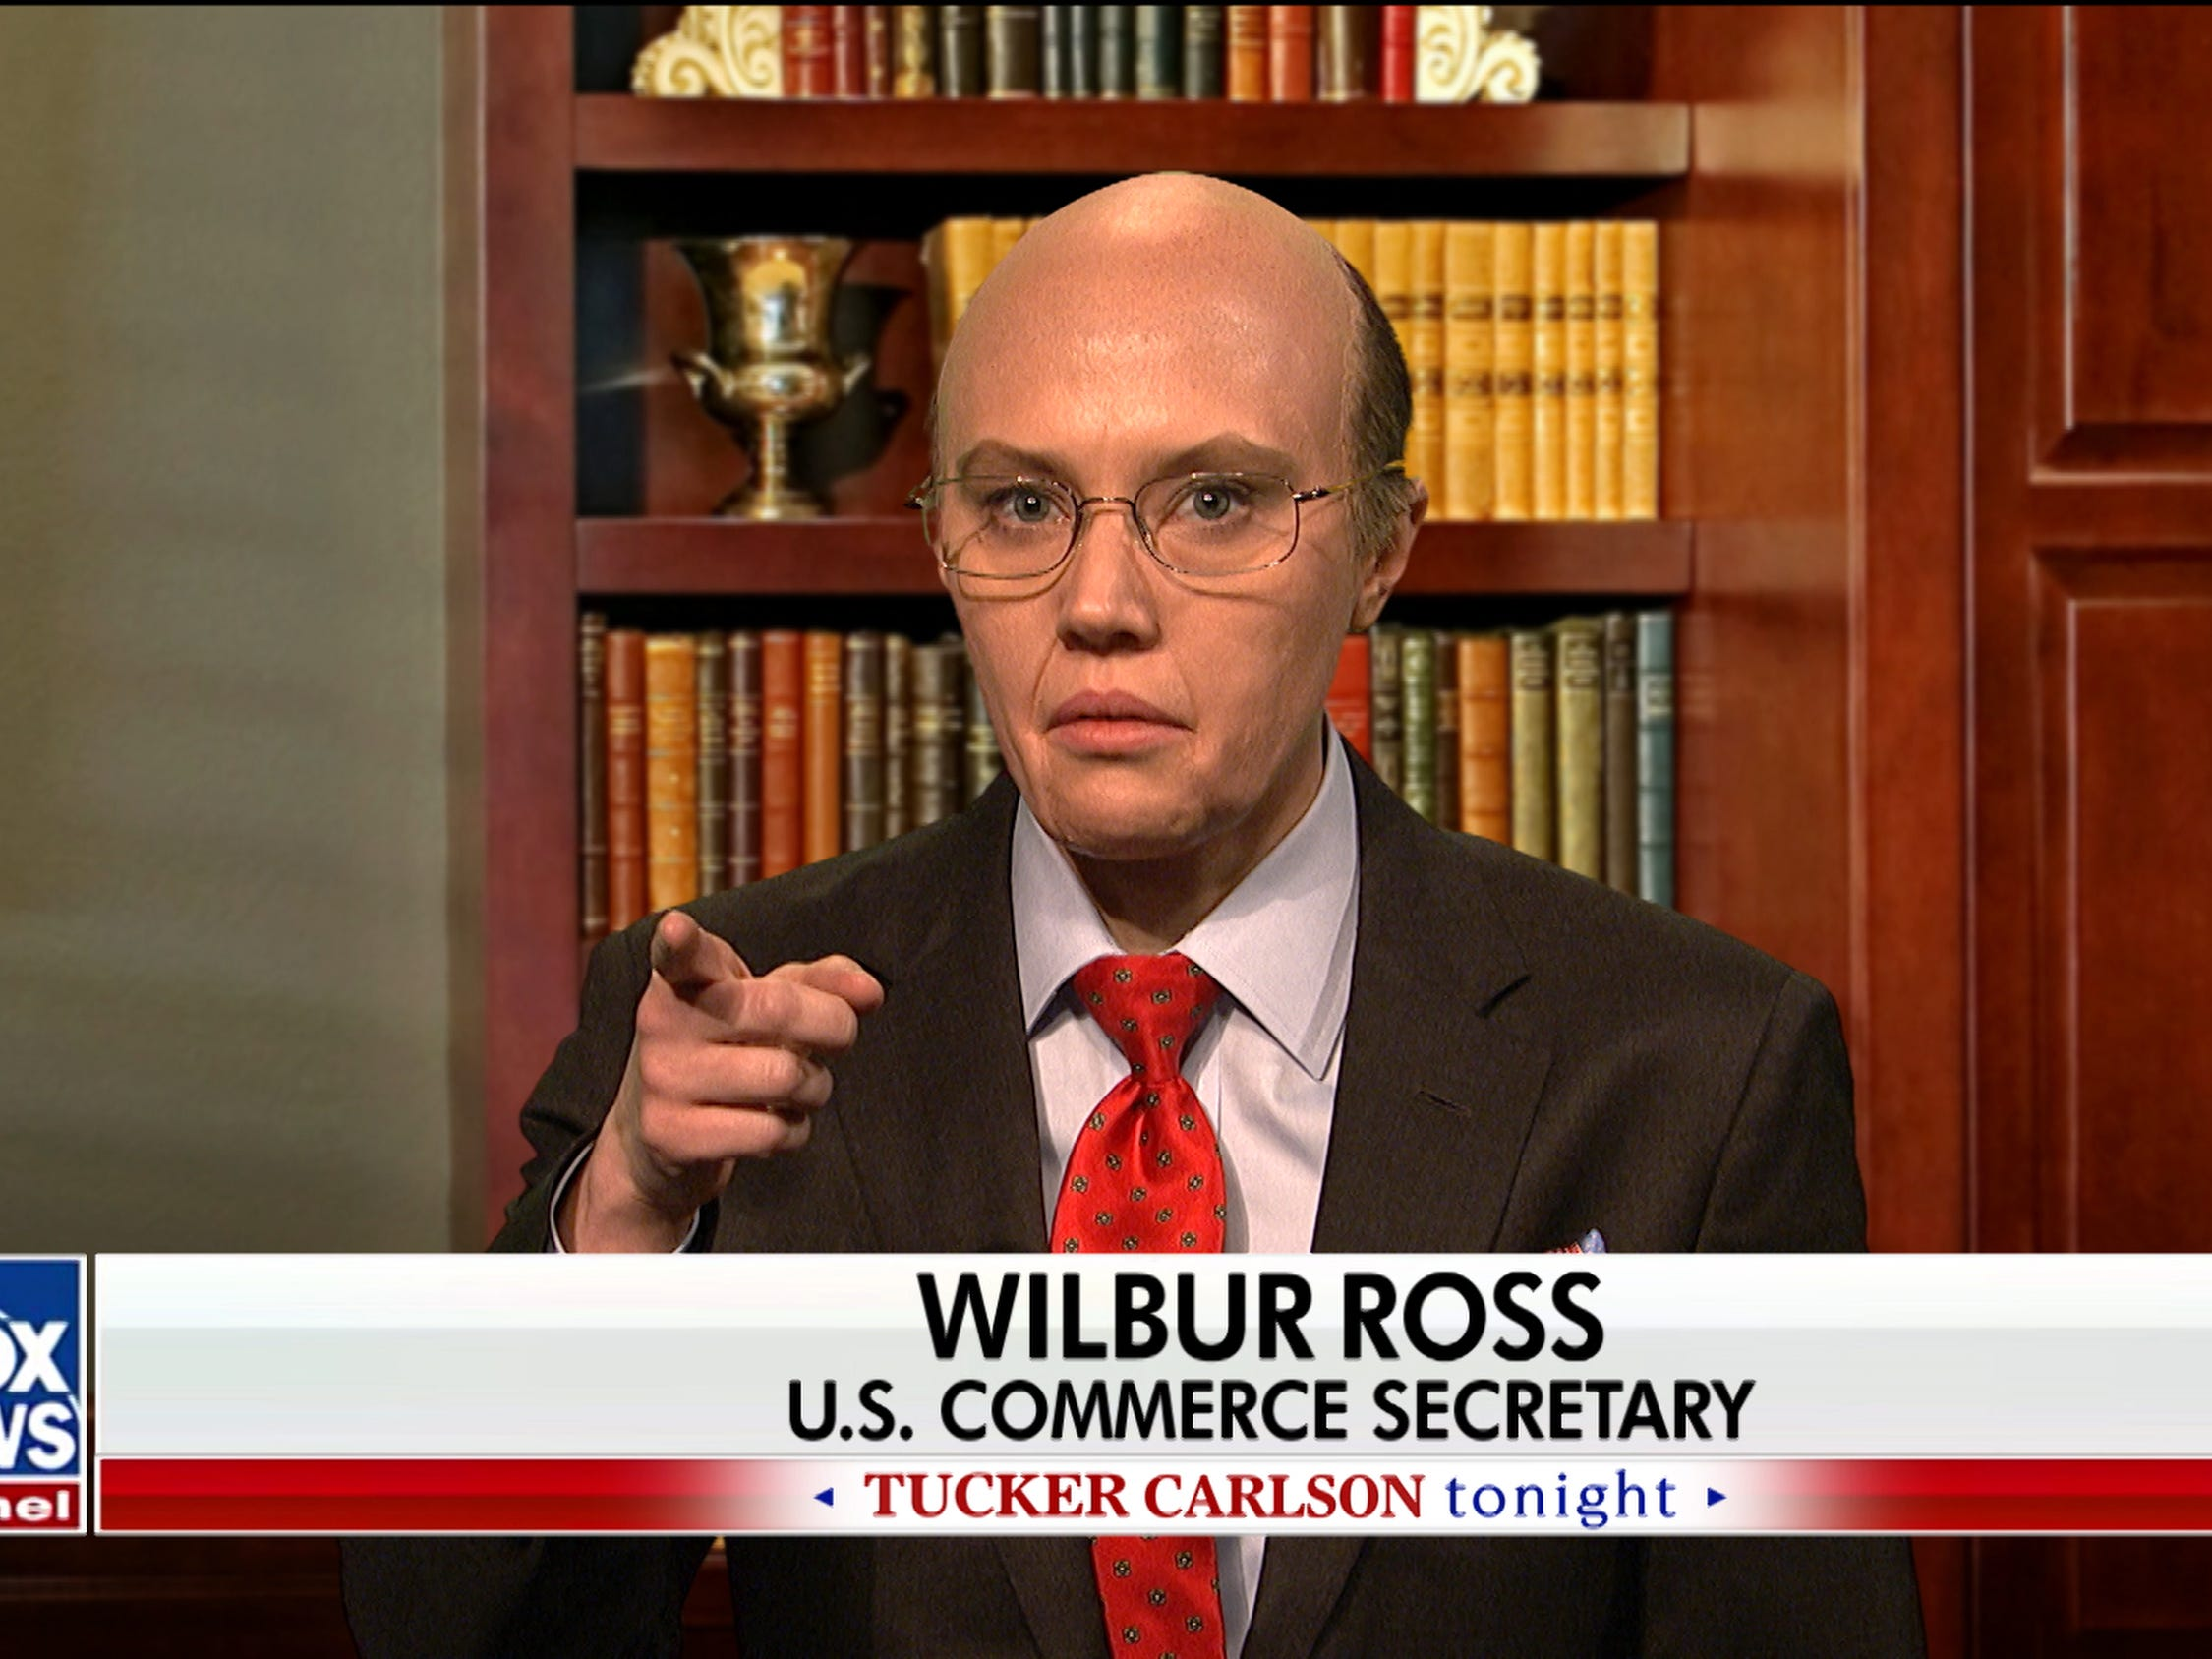 "Appearing as Commerce Secretary Wilbur Ross, Kate McKinnon made light of his a comment in which he advised furloughed federal workers to take out loans to tide them over rather than seek help from food banks. ""That was silly of me,"" her Ross deadpanned. ""I simply meant there are other ways to get money, like liquidating their stocks or selling a painting. Even a lesser Picasso will get you through a week or two of yacht maintenance."""